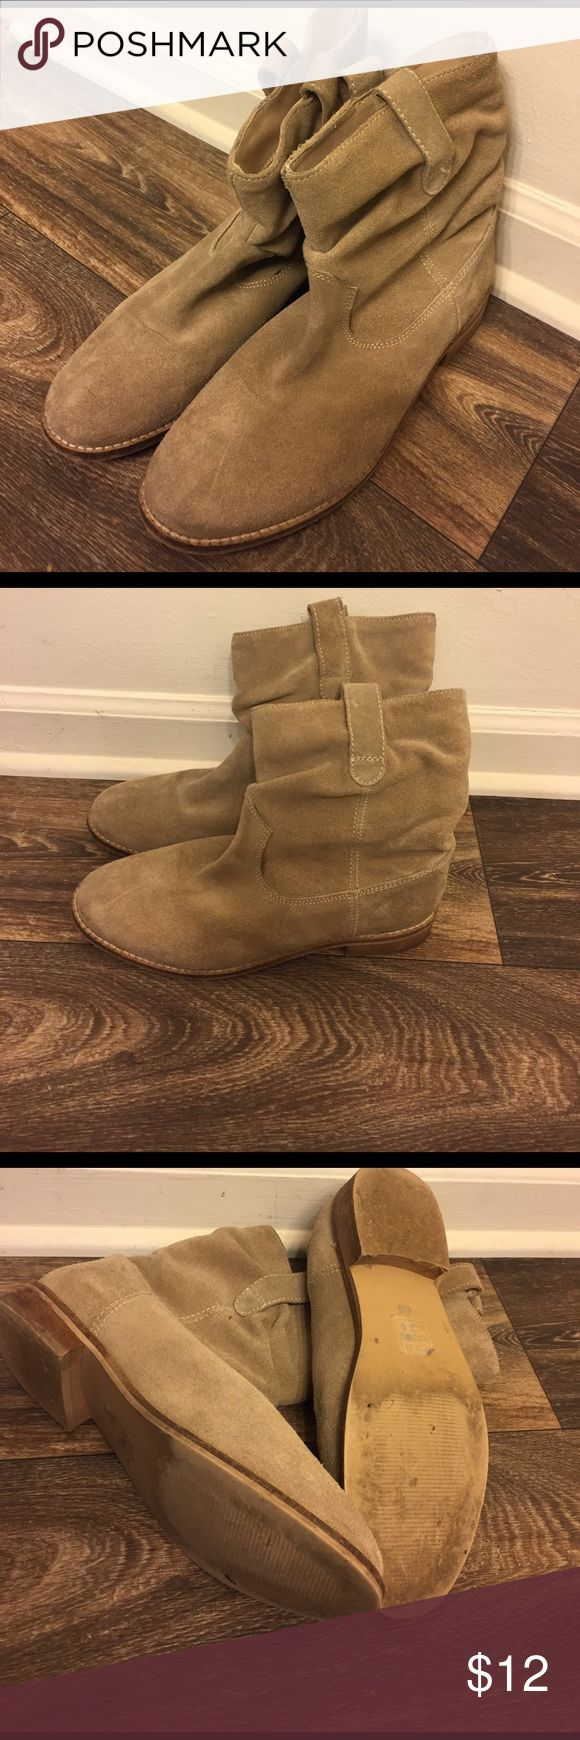 Asos Low Boots Suede like very lightly worn booties originally from ASOS. Brand is marked on inside to prevent store returns. Great condition! Fits more like a 7-7 1/2 ASOS Shoes Ankle Boots & Booties